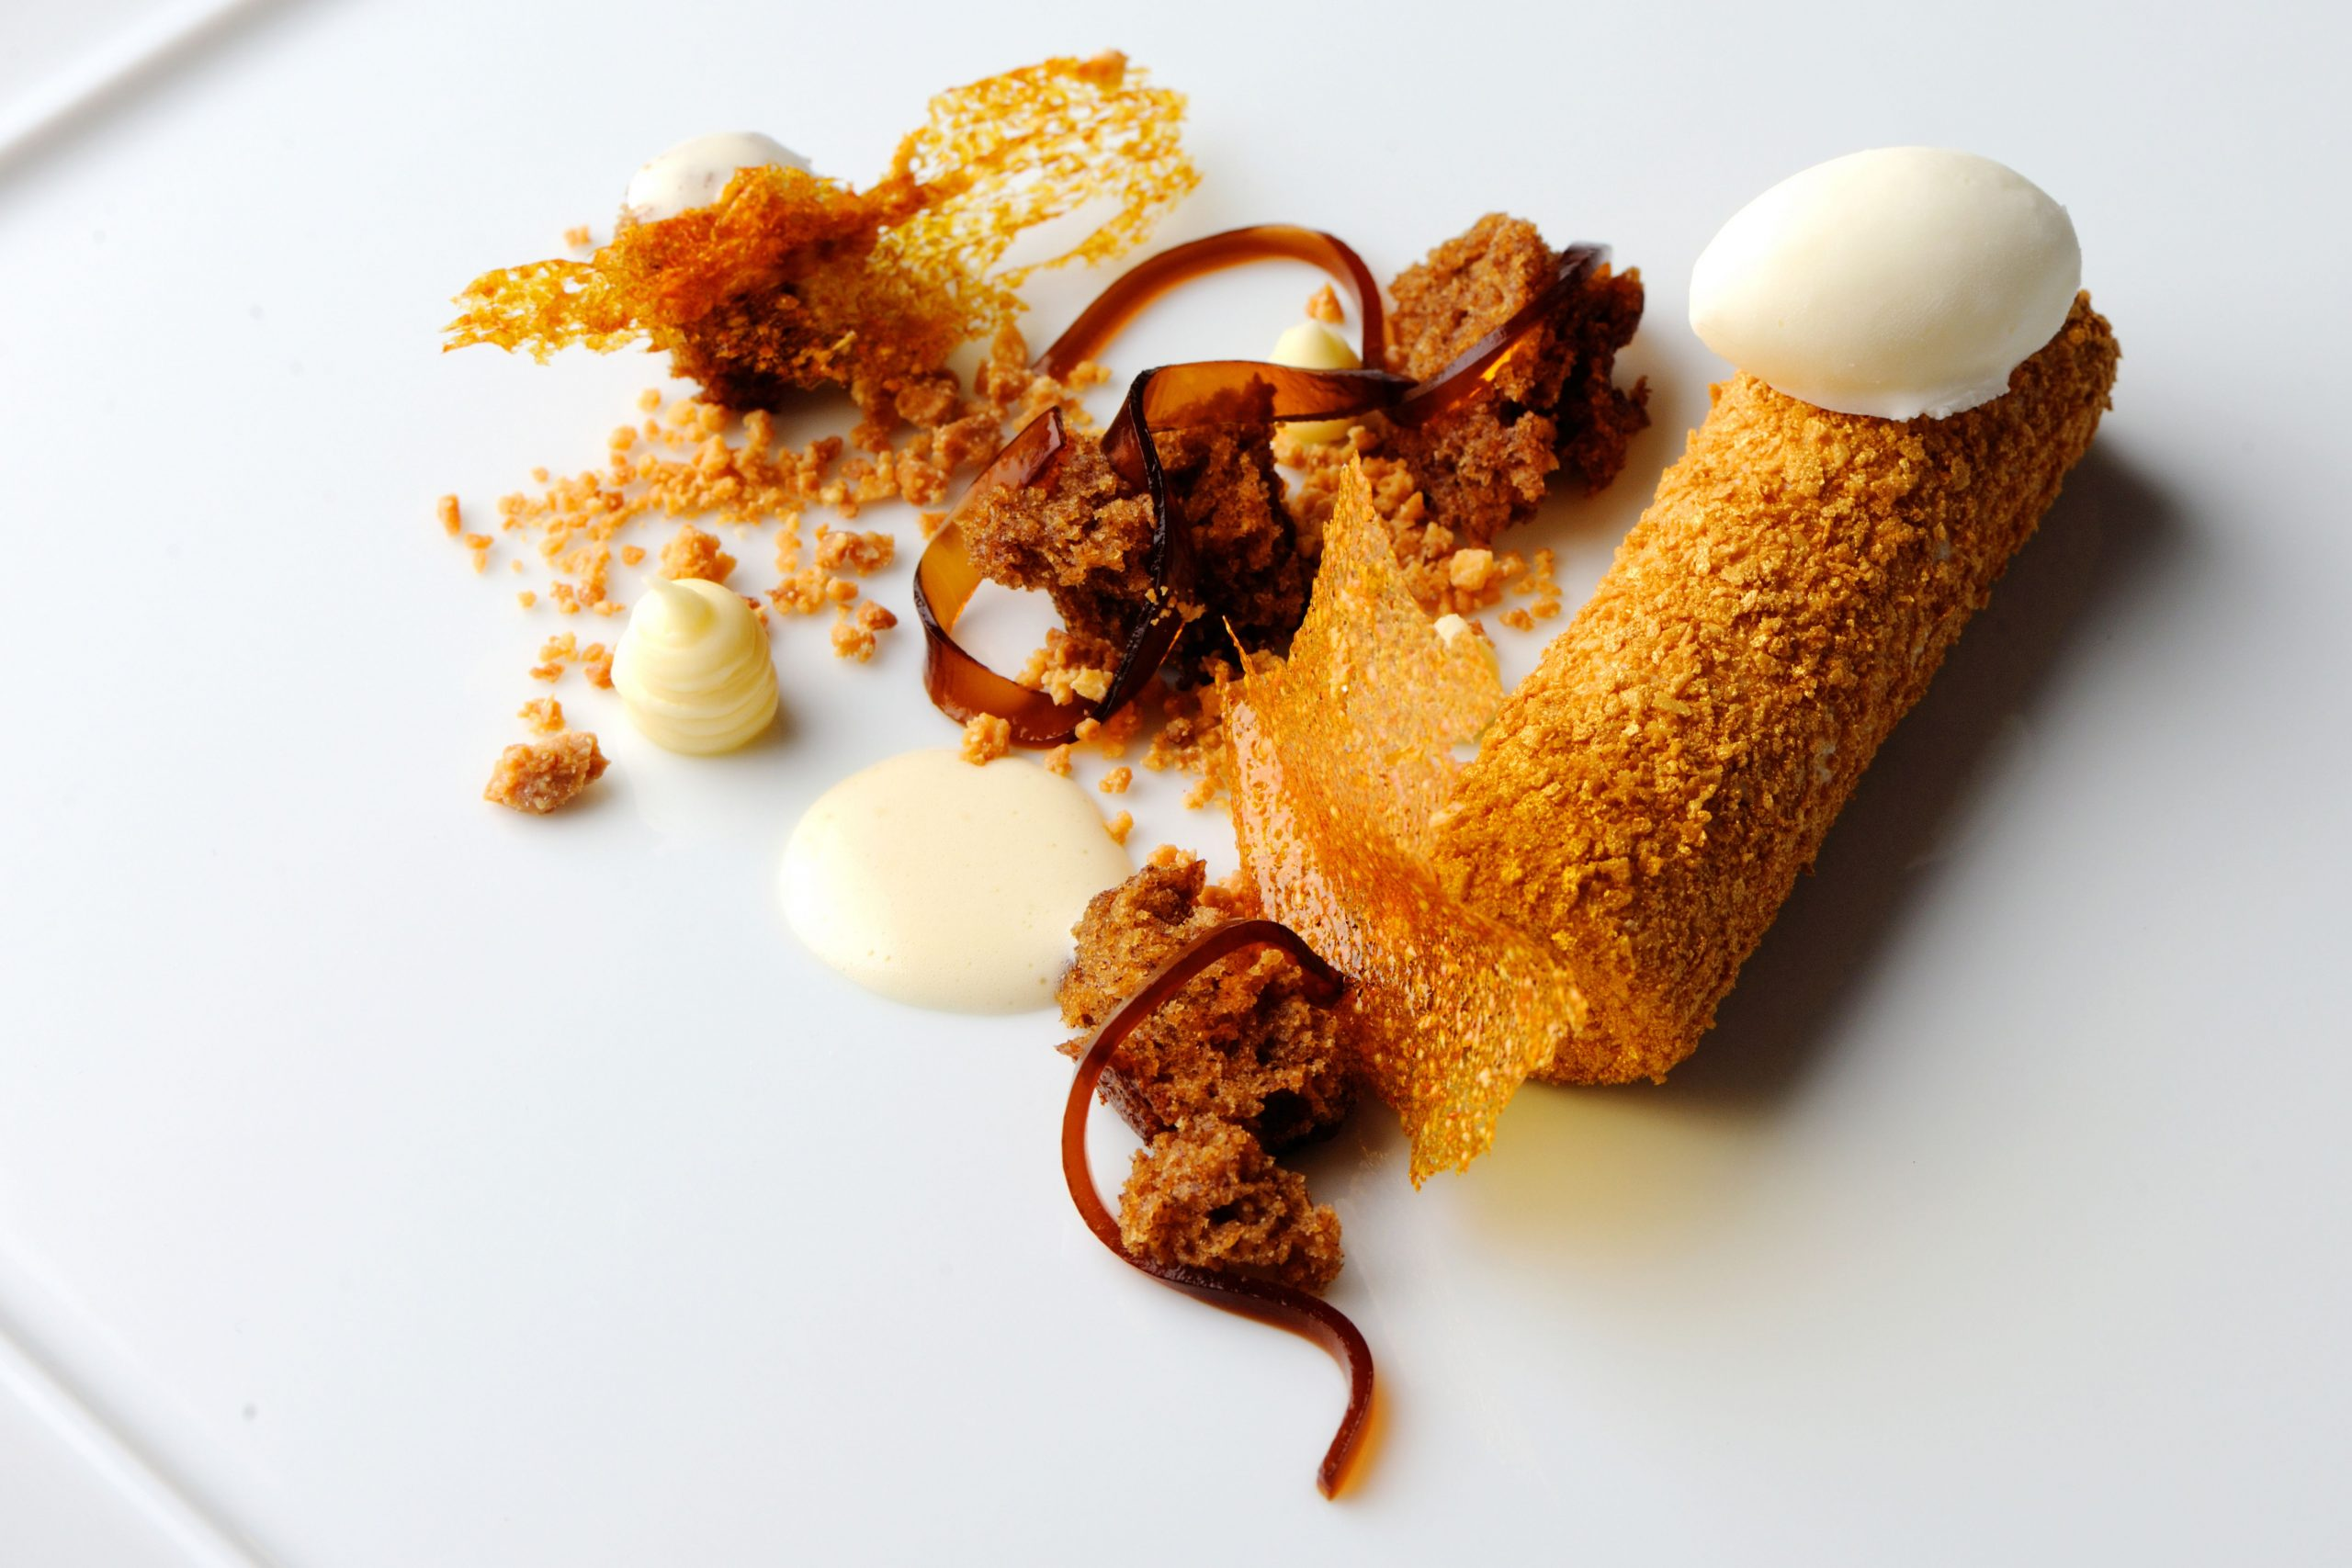 Michelin Star Desserts - Great British Chefs